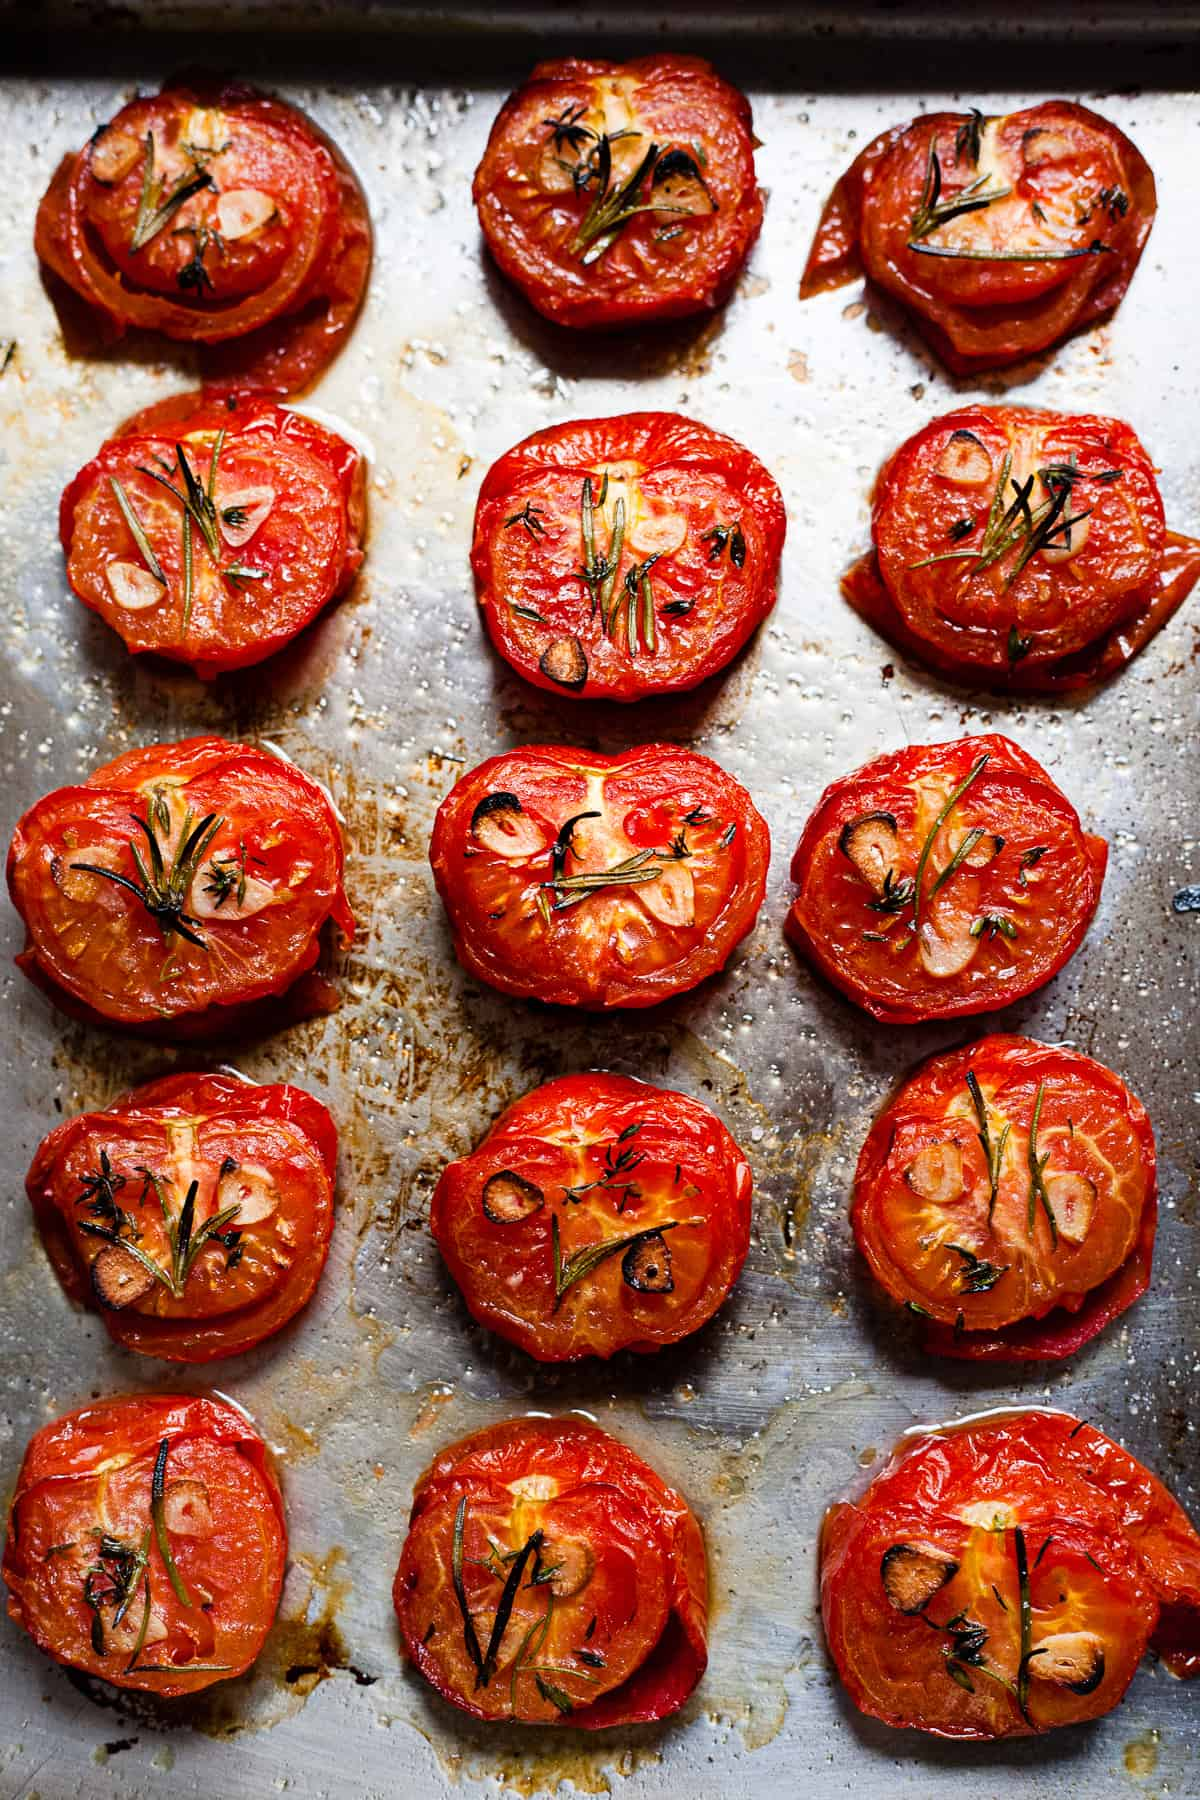 roasted tomatoes on a baking tray with herbs